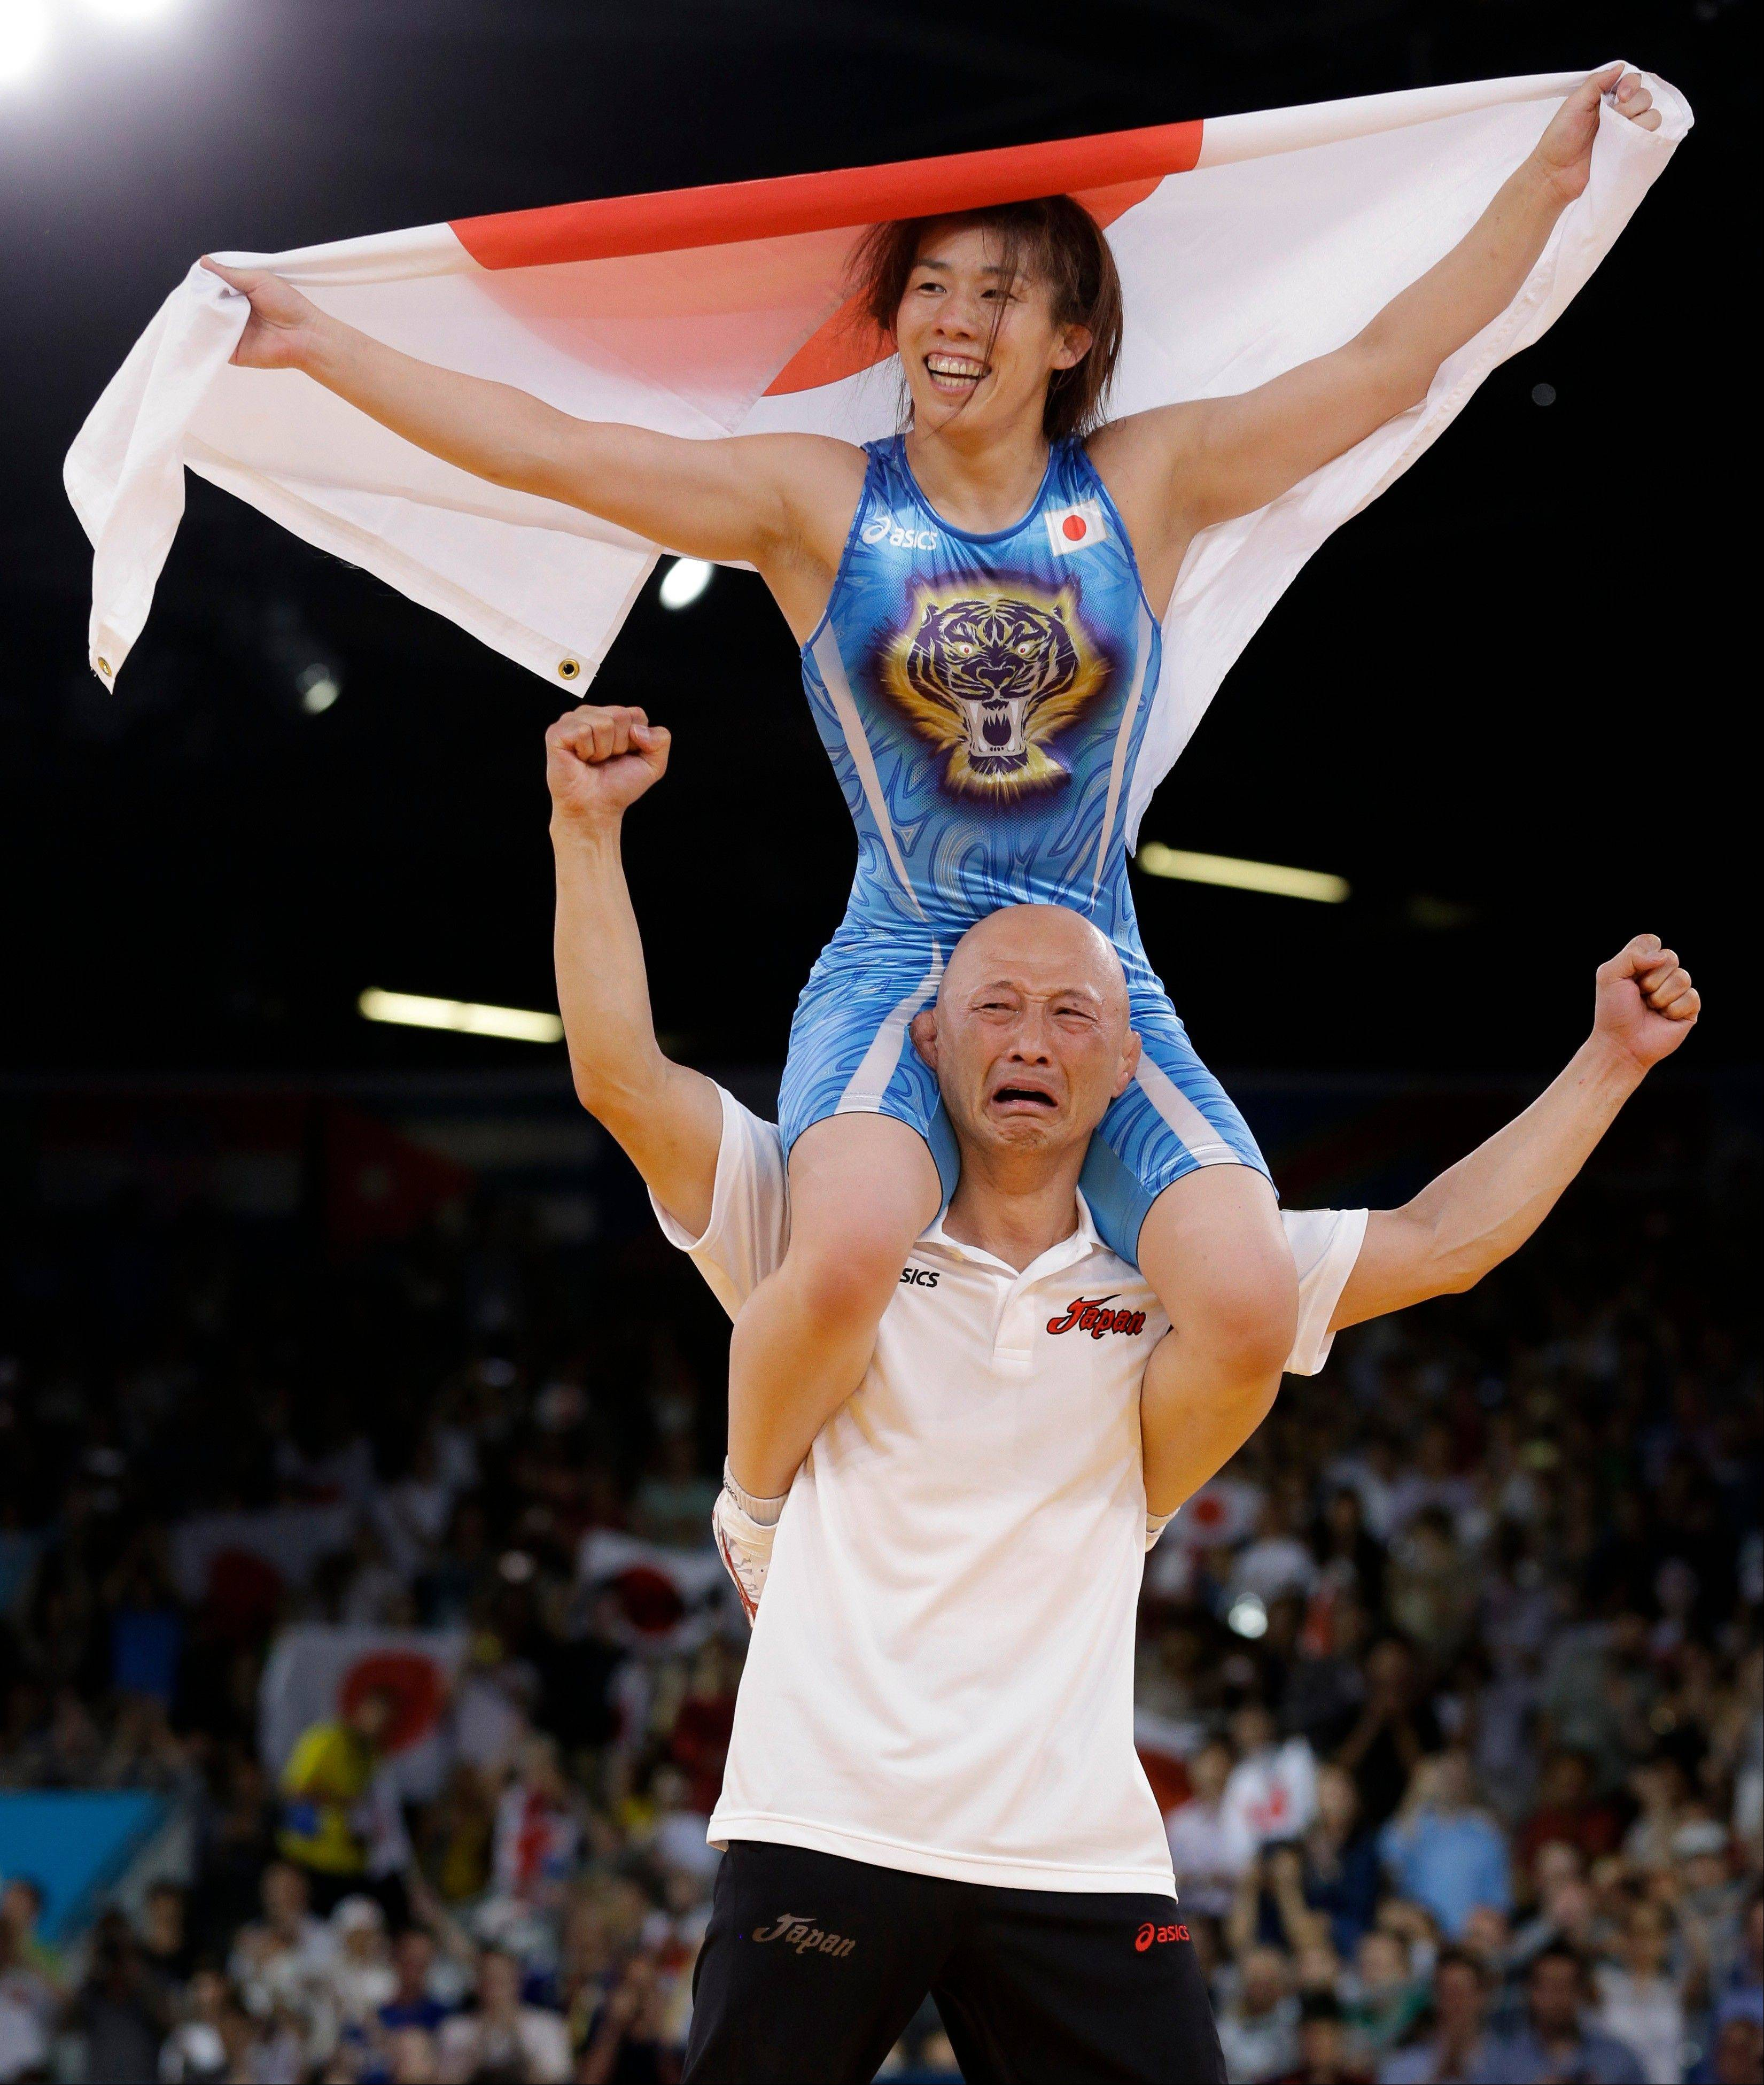 Saori Yoshida of Japan celebrates after she beat Tonya Lynn Verbeek of Canada for the gold medal during their 55-kg women's freestyle wrestling competition at the 2012 Summer Olympics, Thursday, Aug. 9, 2012, in London.